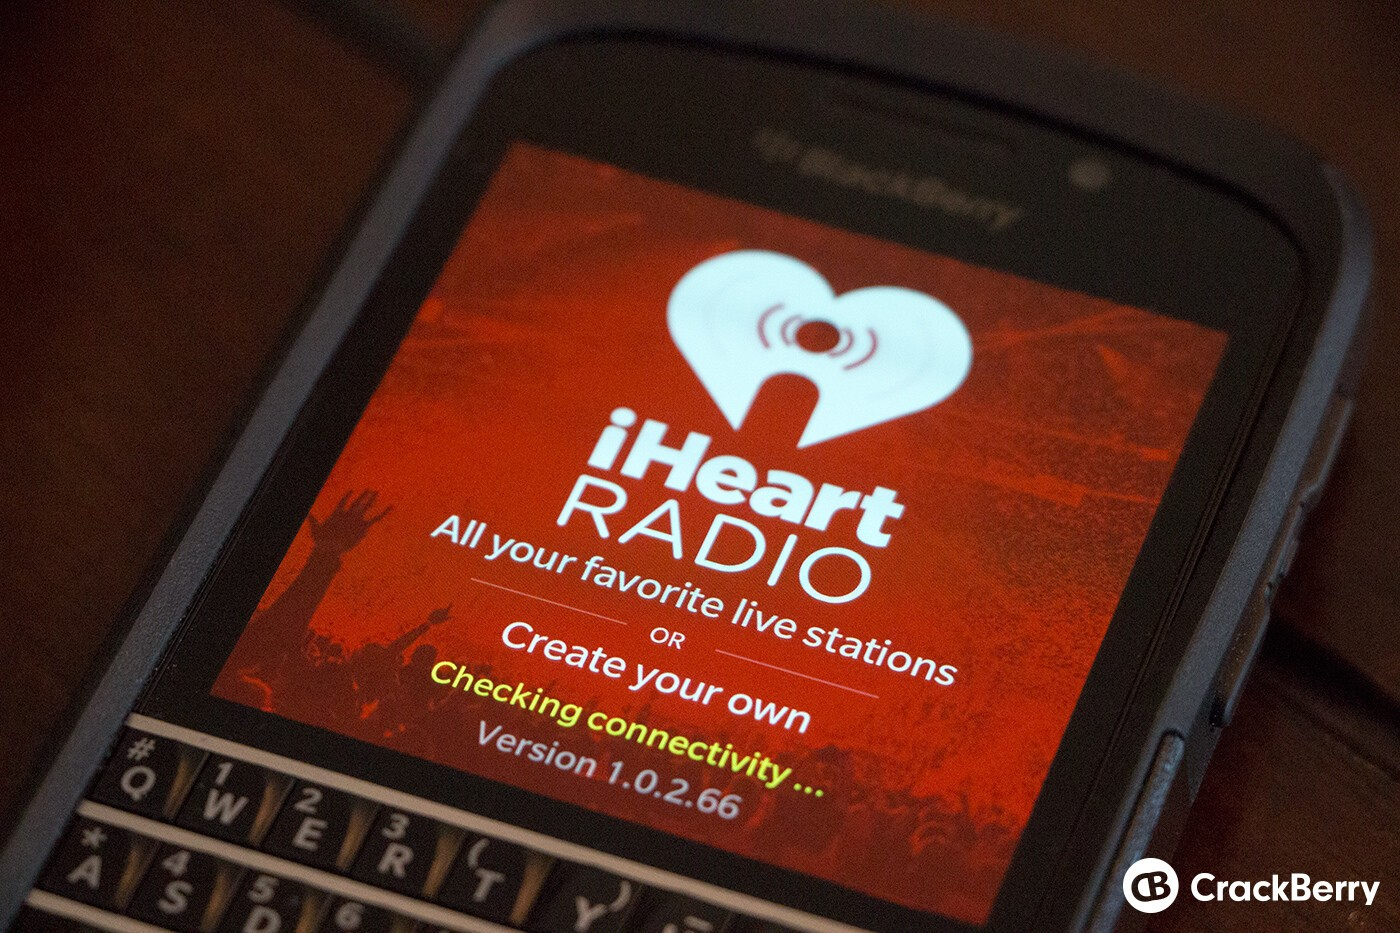 iHeartRadio for BlackBerry 10 now available | CrackBerry com